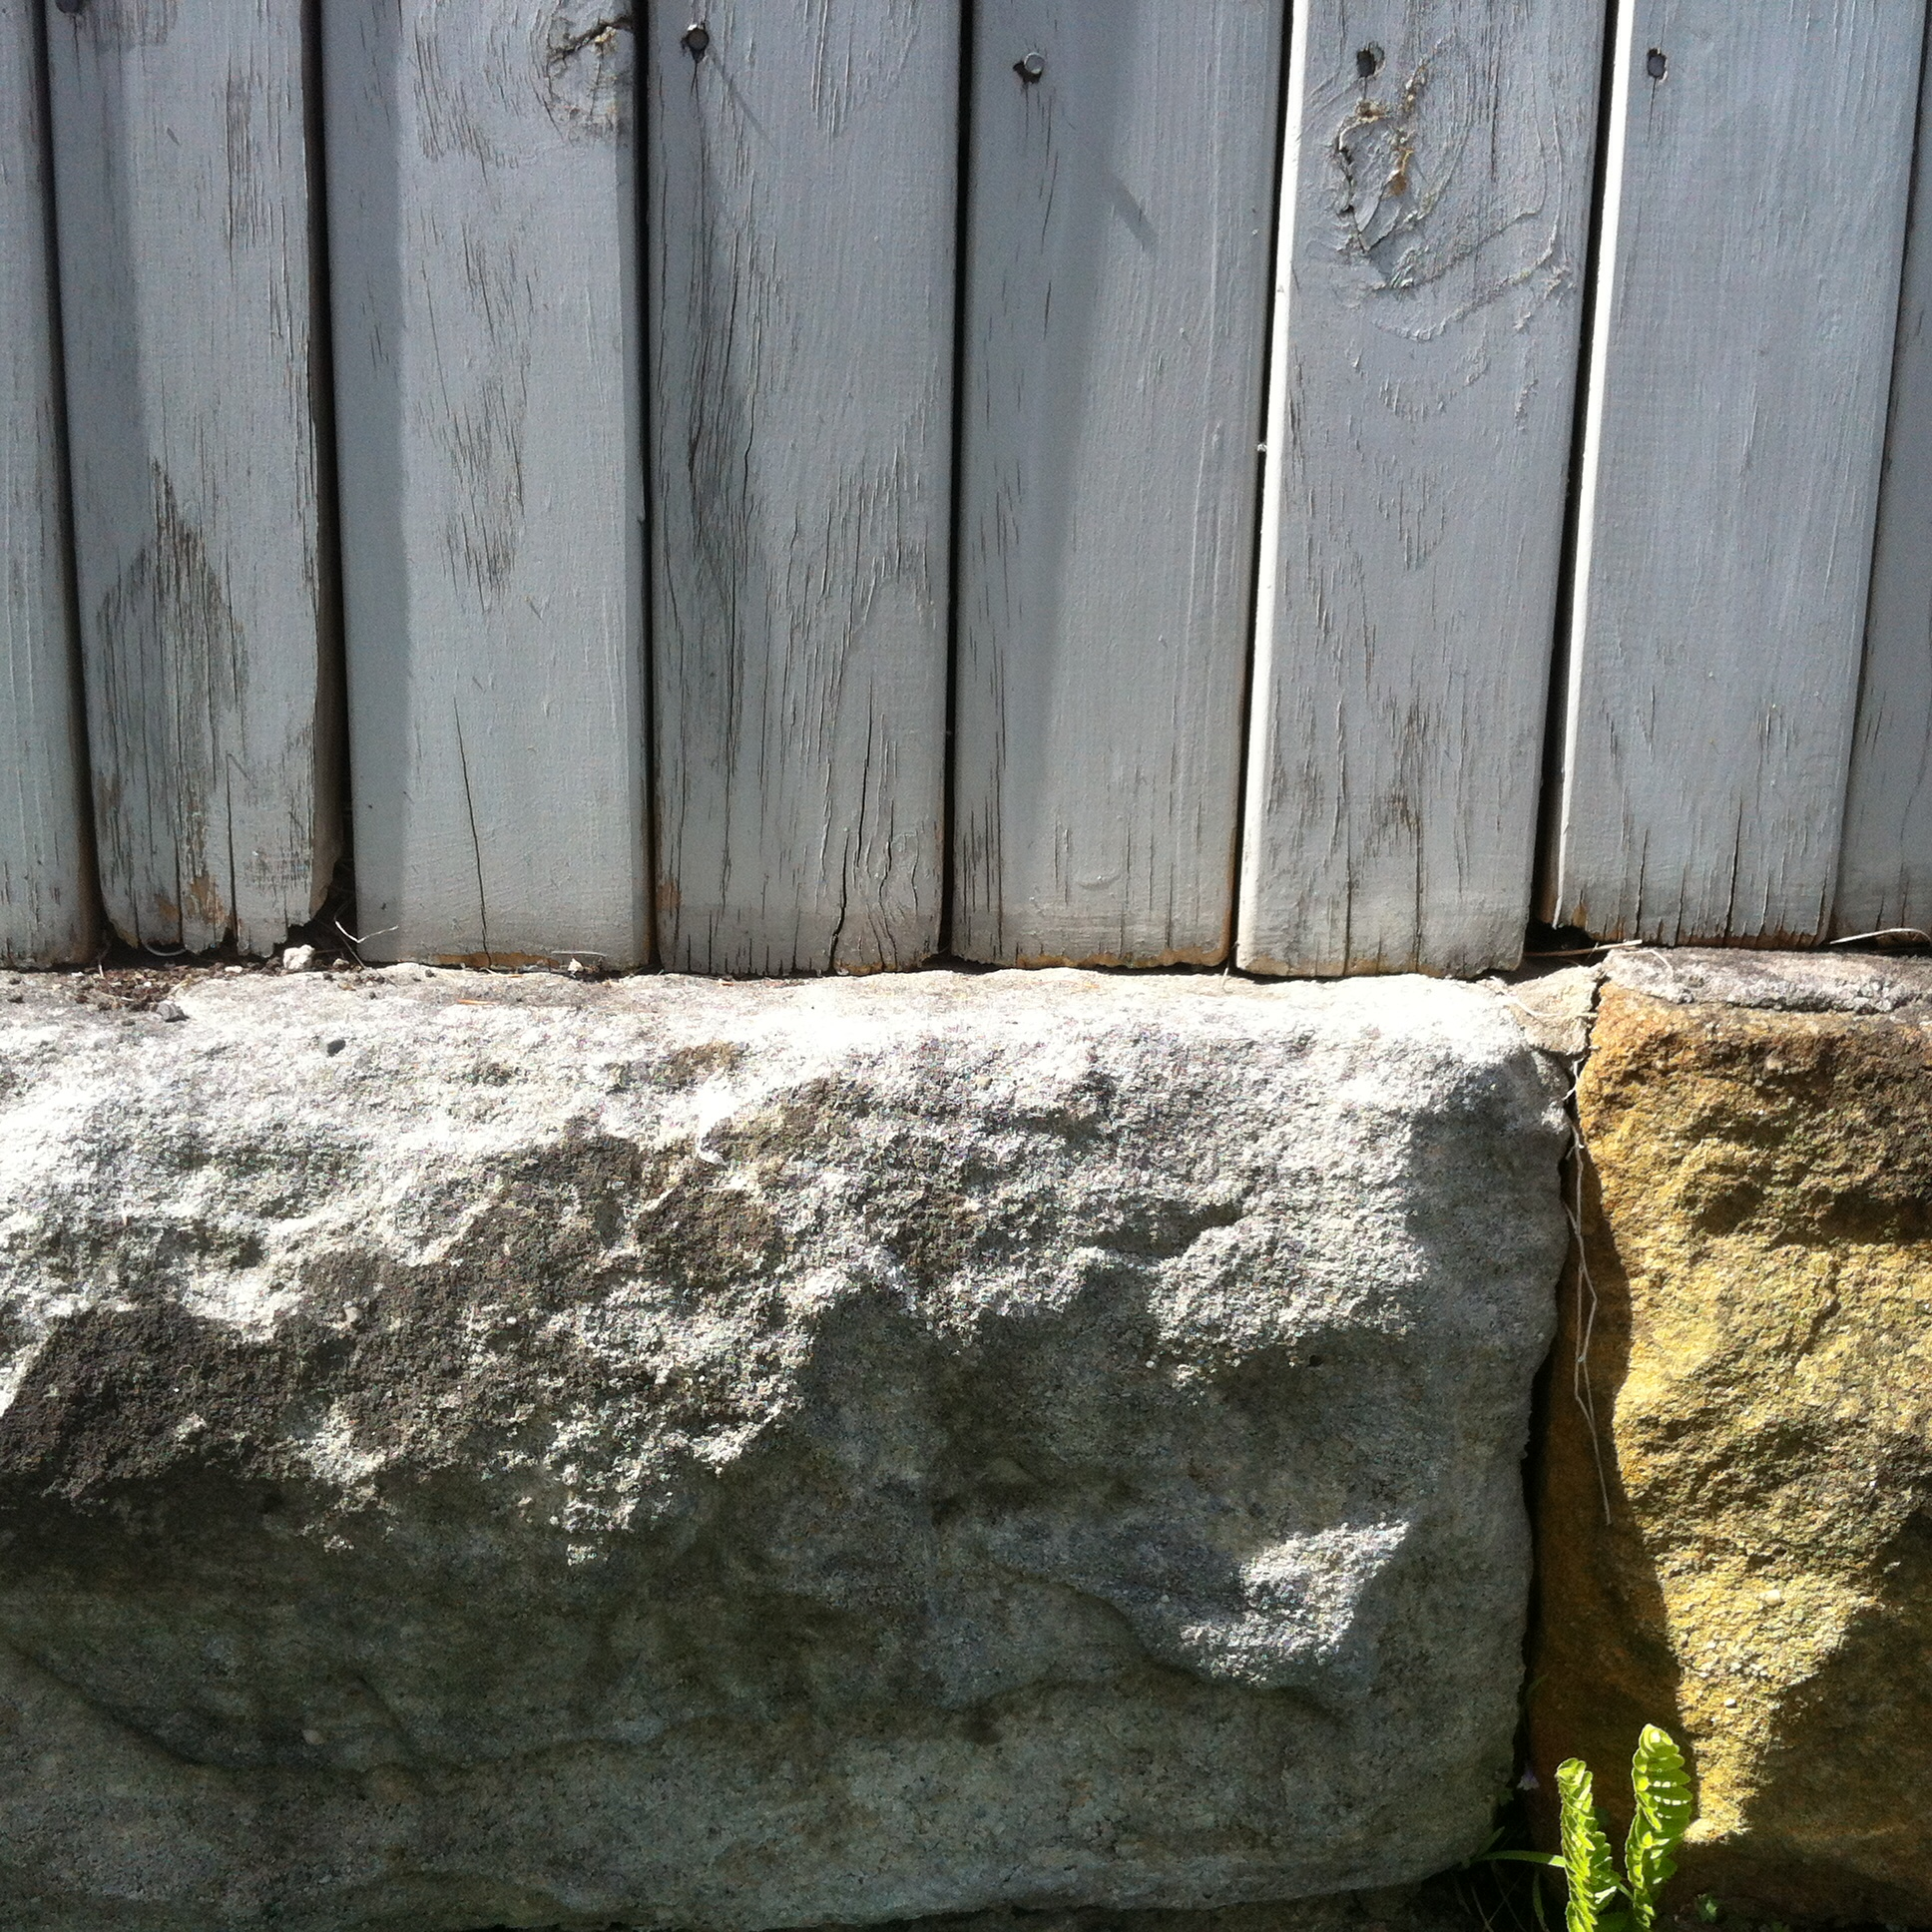 Portion of stone wall and grey painted fence